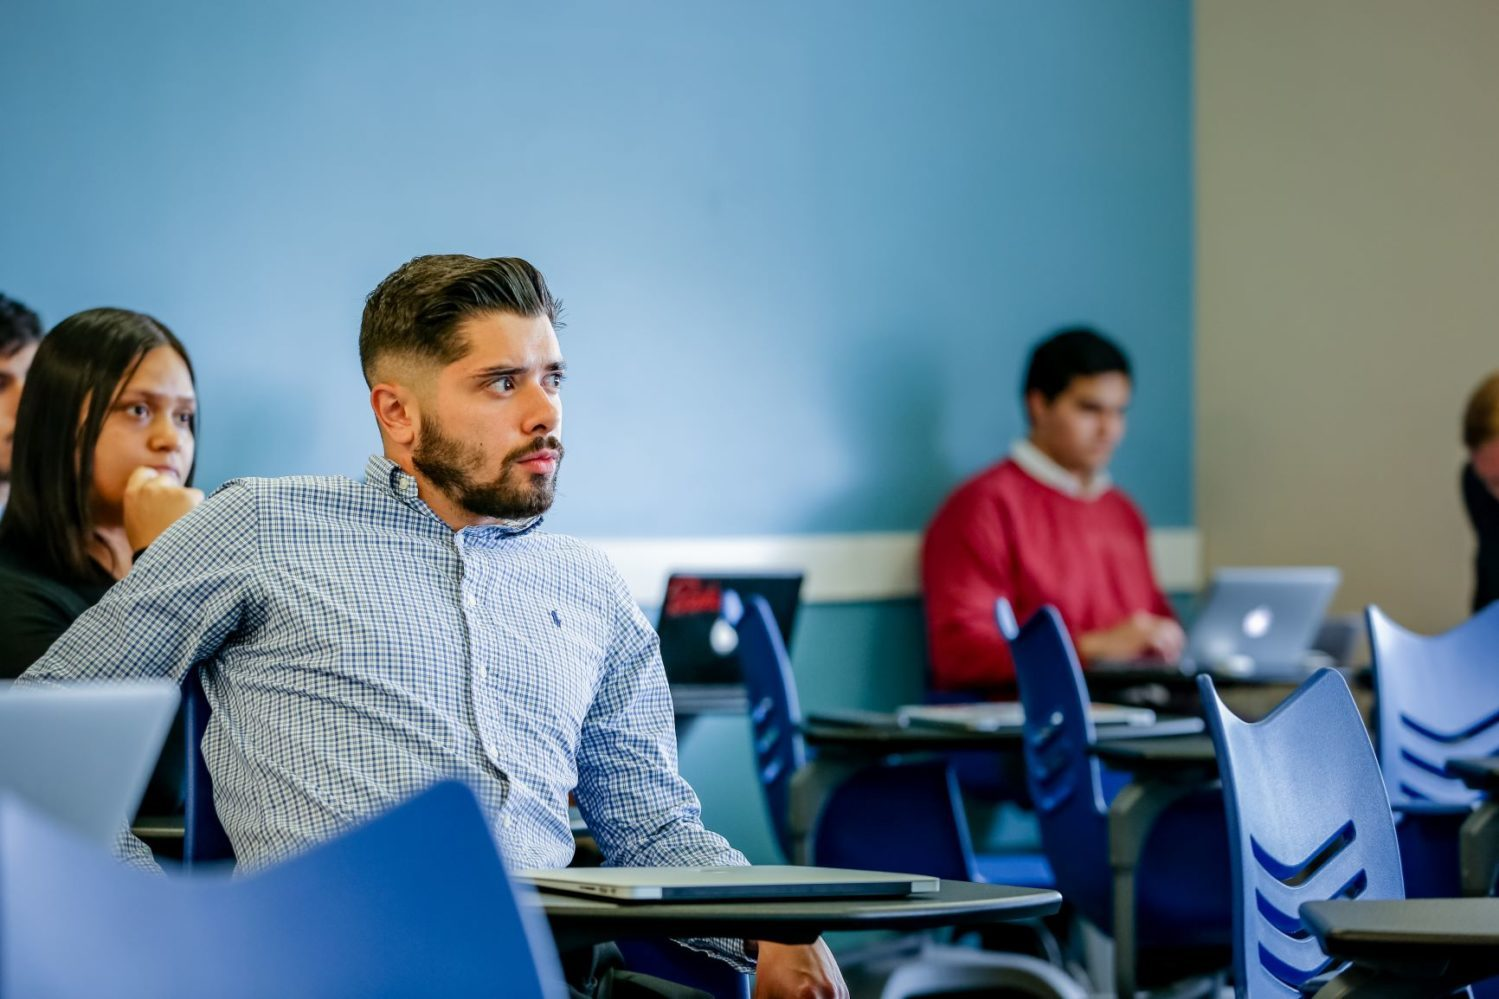 graduate student in classroom